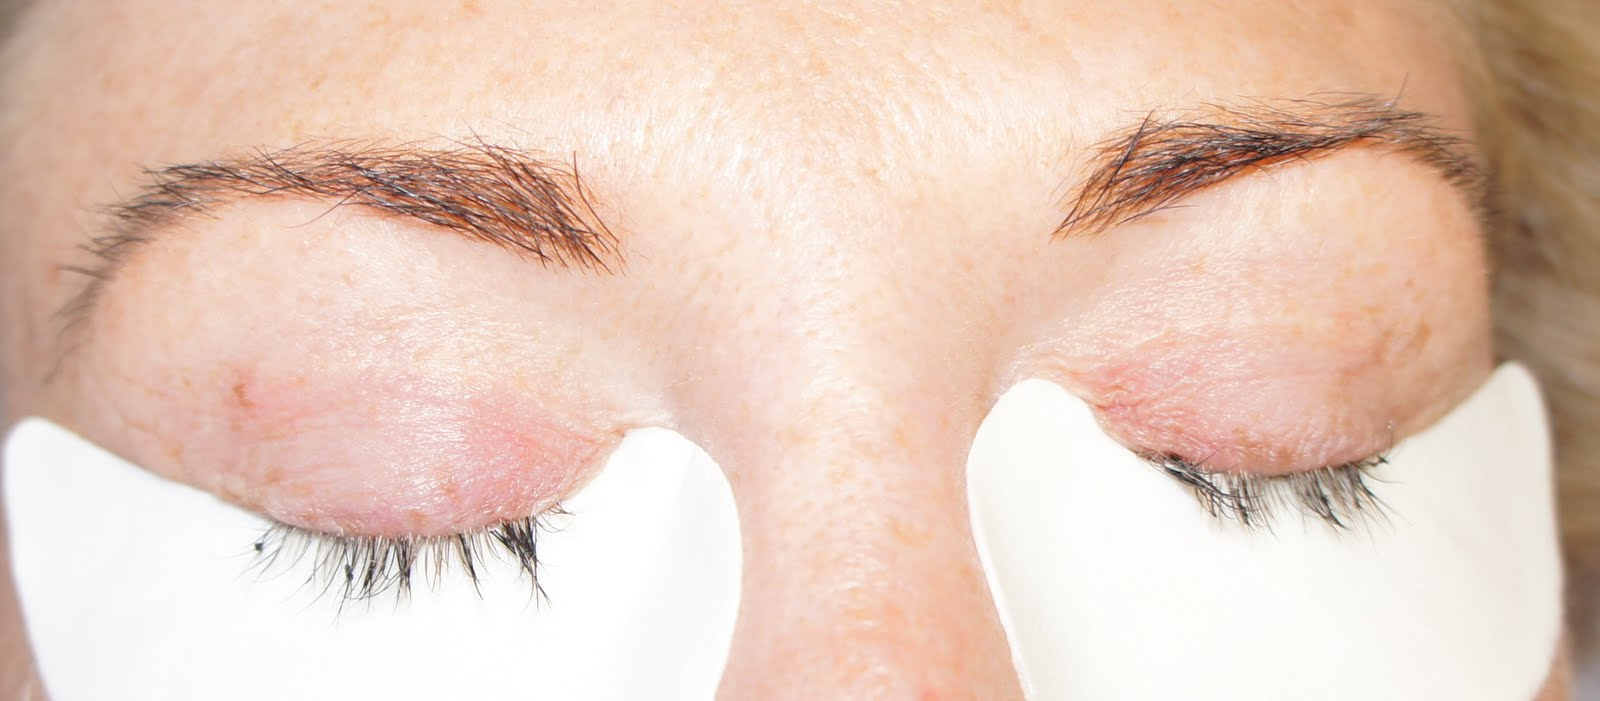 Eyelash Extension Glue Problems - Tape On And Off Extensions